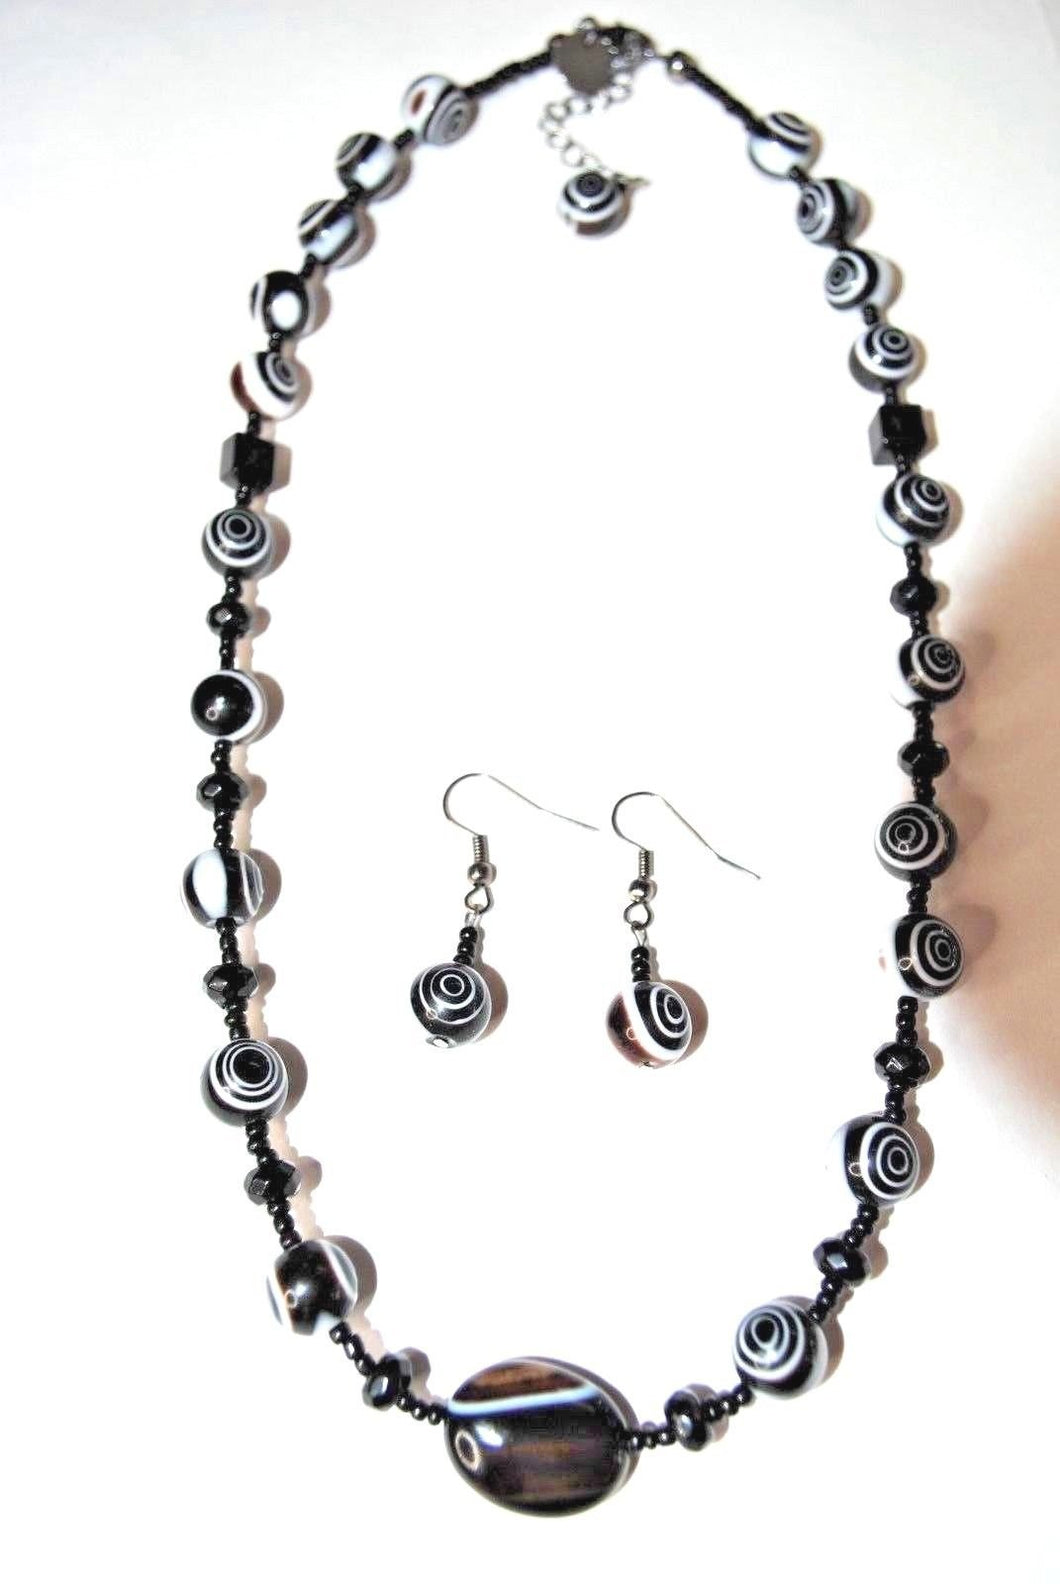 Swirl Glass Necklace Set.Black and white Beaded Necklace.Handmade Black Necklaces.Black-Brown White Beads.Olga's Treasures Shop